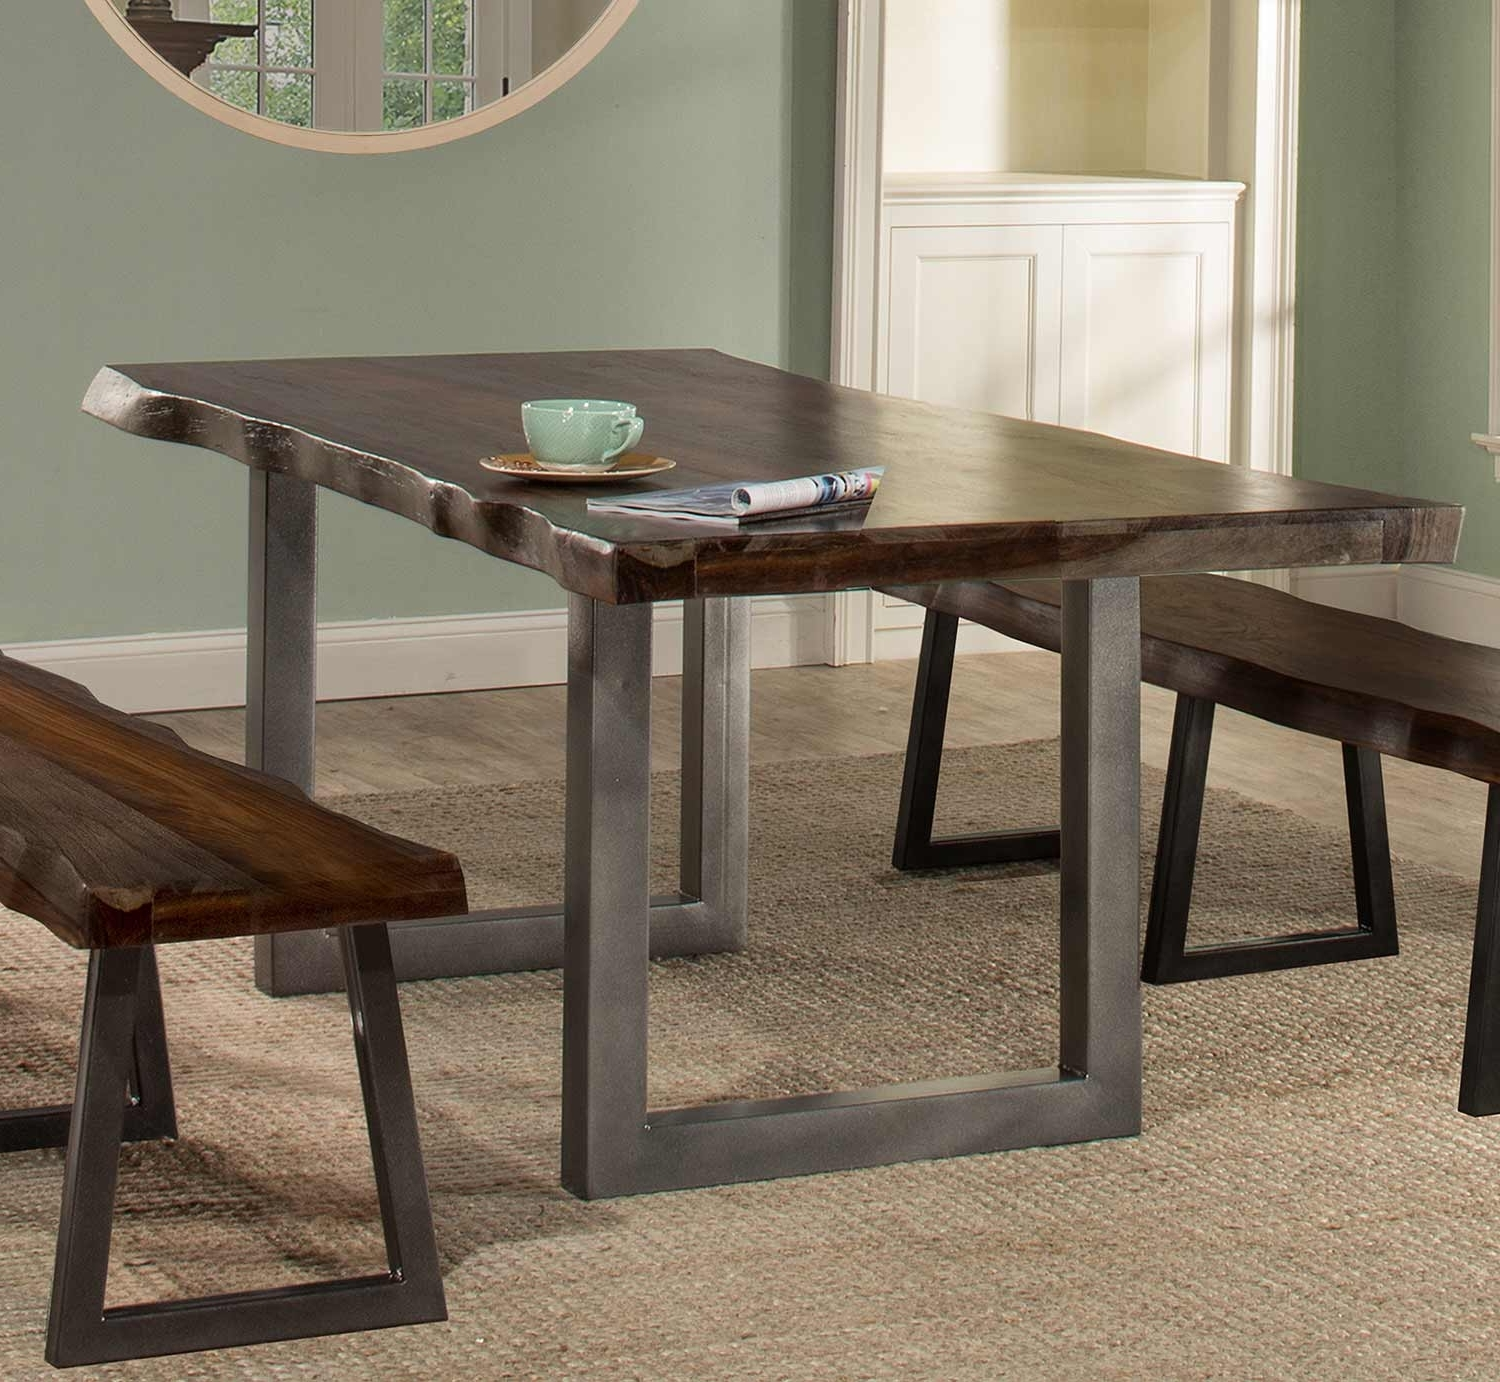 Hillsdale Emerson Rectangle Dining Table – Gray Sheesham 5925Dt In Latest Sheesham Dining Tables (Gallery 13 of 25)